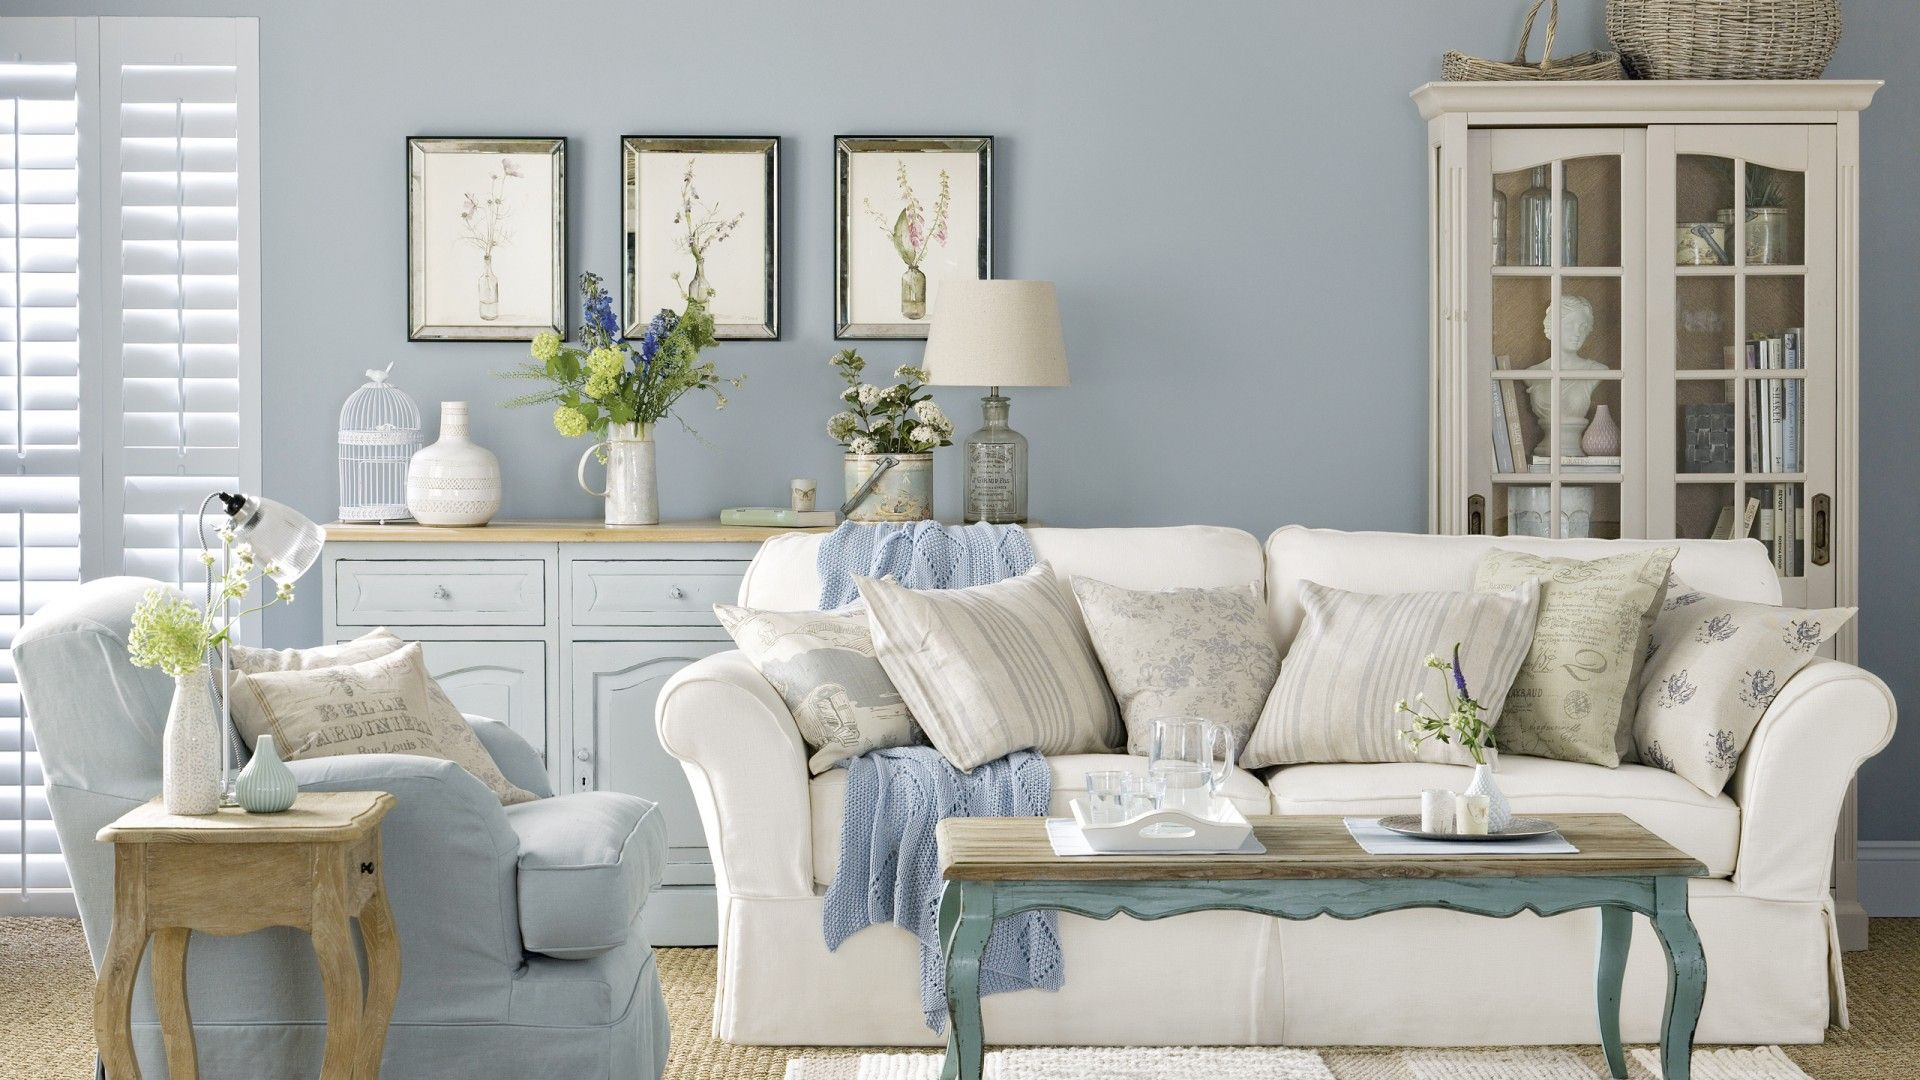 Pale Blue Country Boutique Living Room The Room Edit Shabby Chic Living Room Shabby Chic Living Room Design Shabby Chic Living Room Furniture #shabby #chic #decorating #ideas #living #room